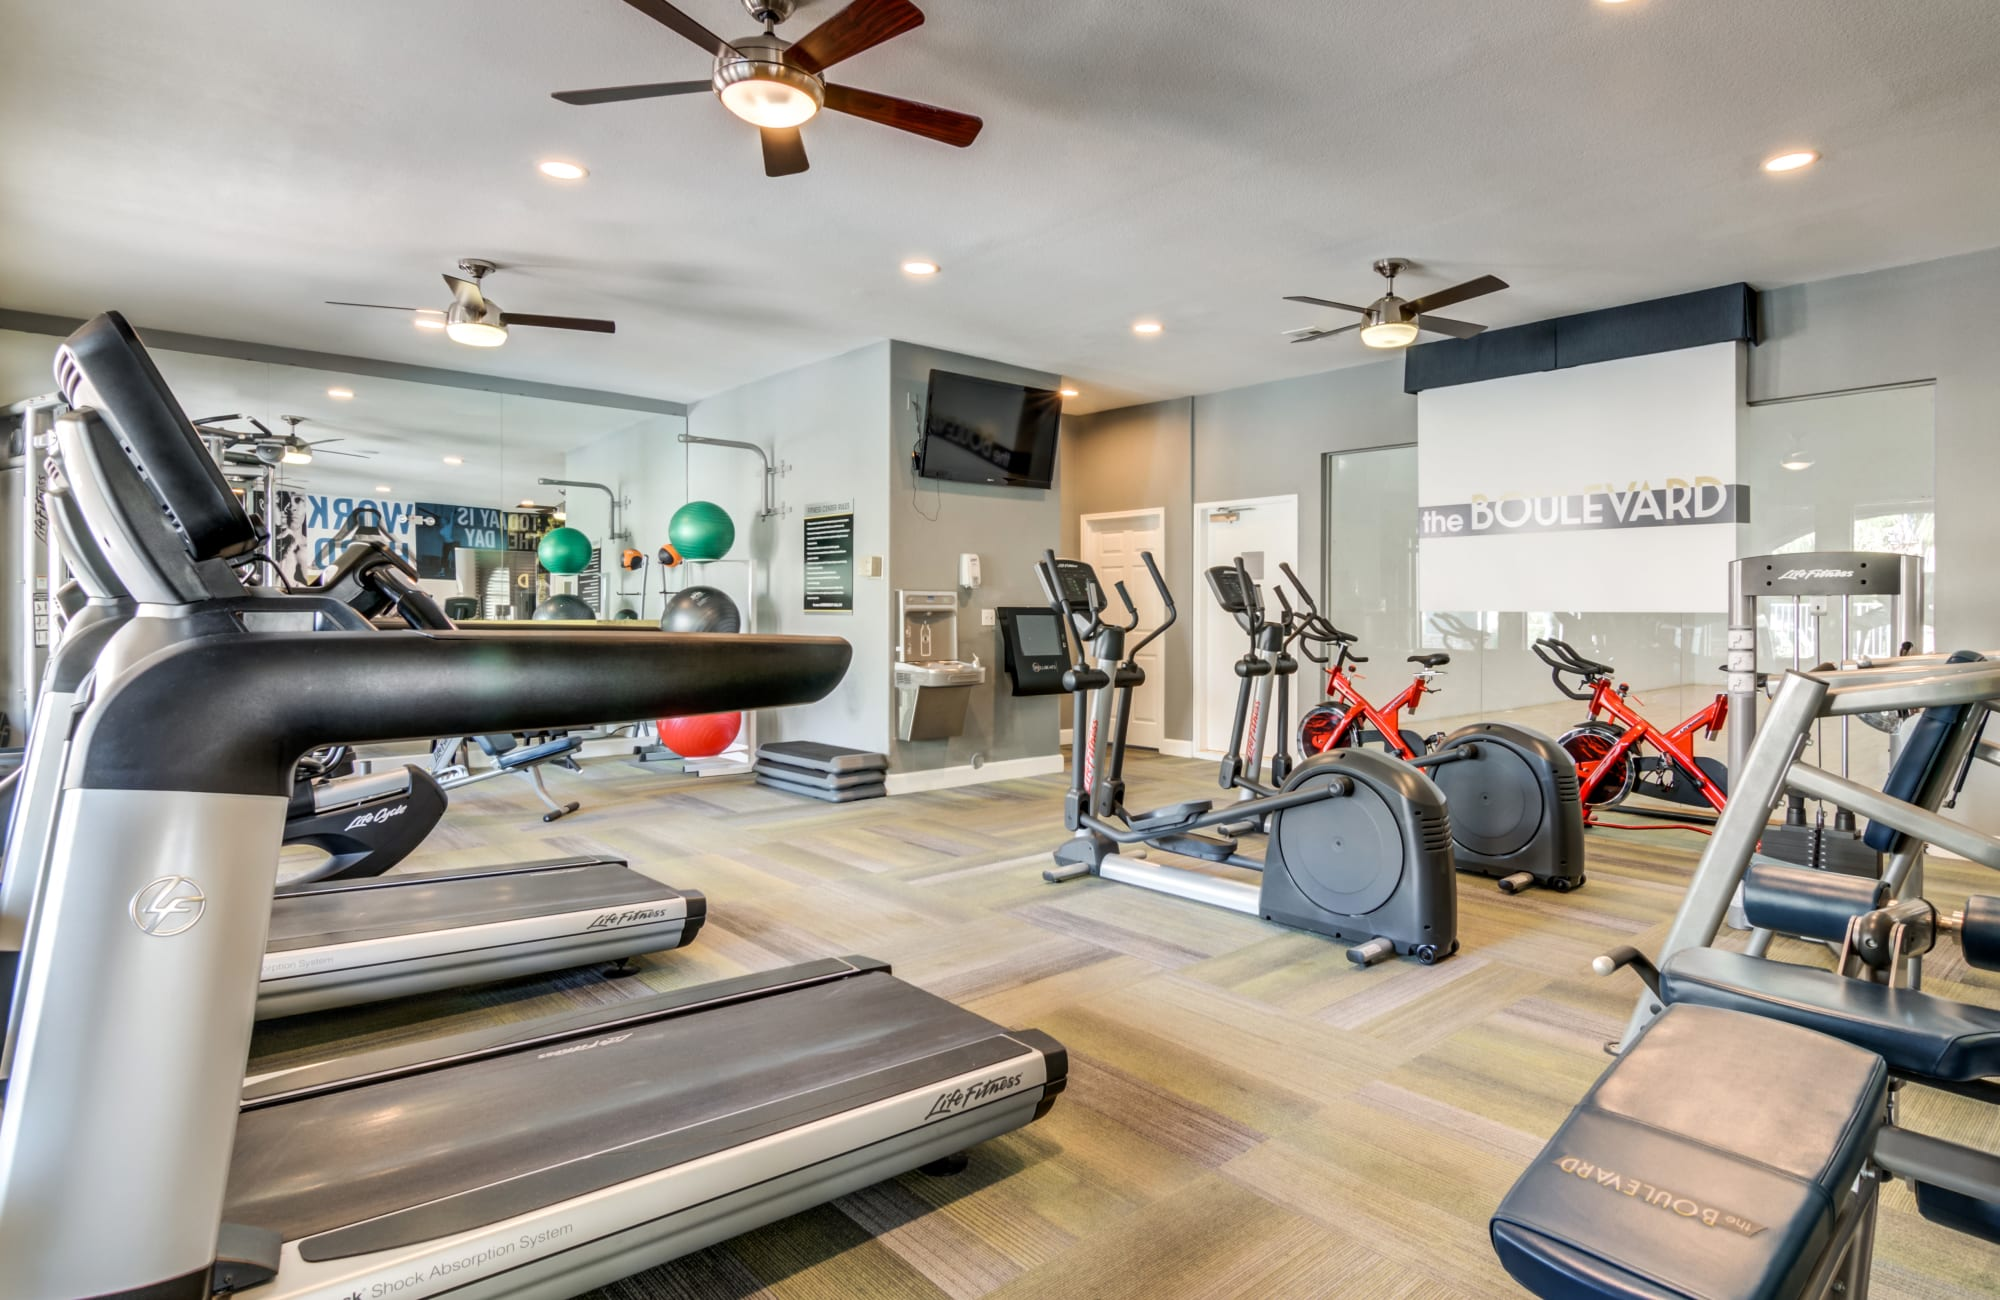 Fitness center at The Boulevard in Phoenix, Arizona